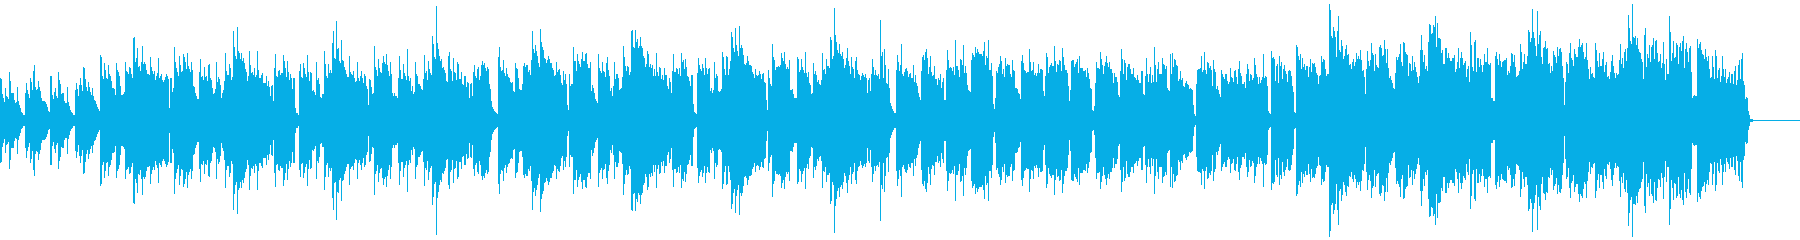 A warm and friendly recorder's reproduced waveform